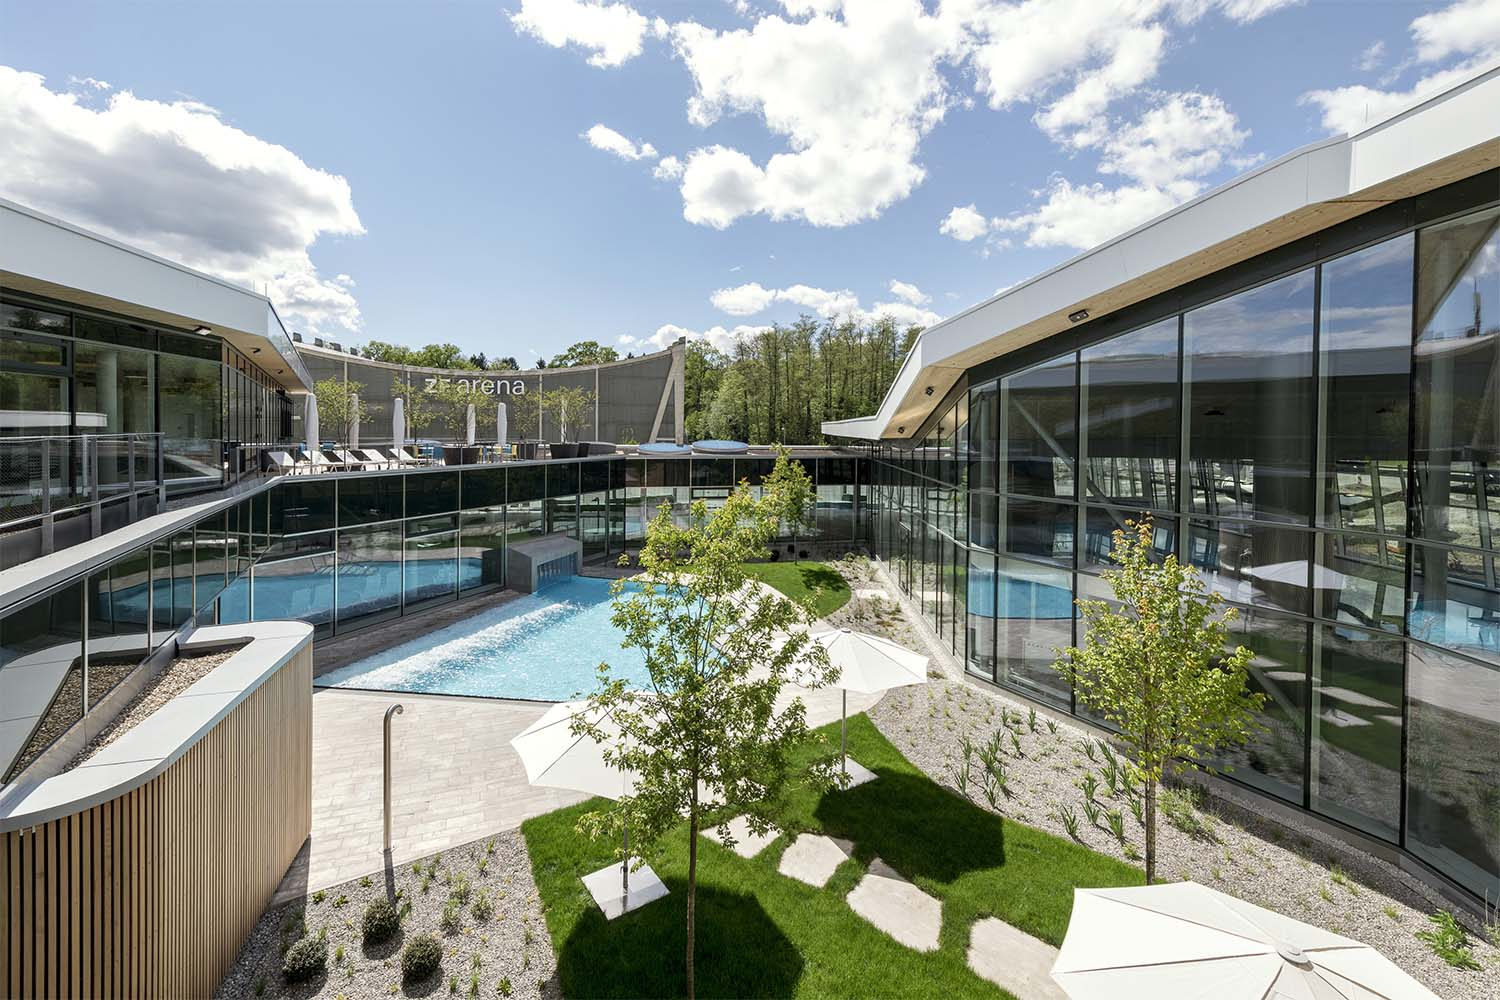 The heart of the complex is the landscaped interior courtyard - an oasis of recuperation. David Matthiessen